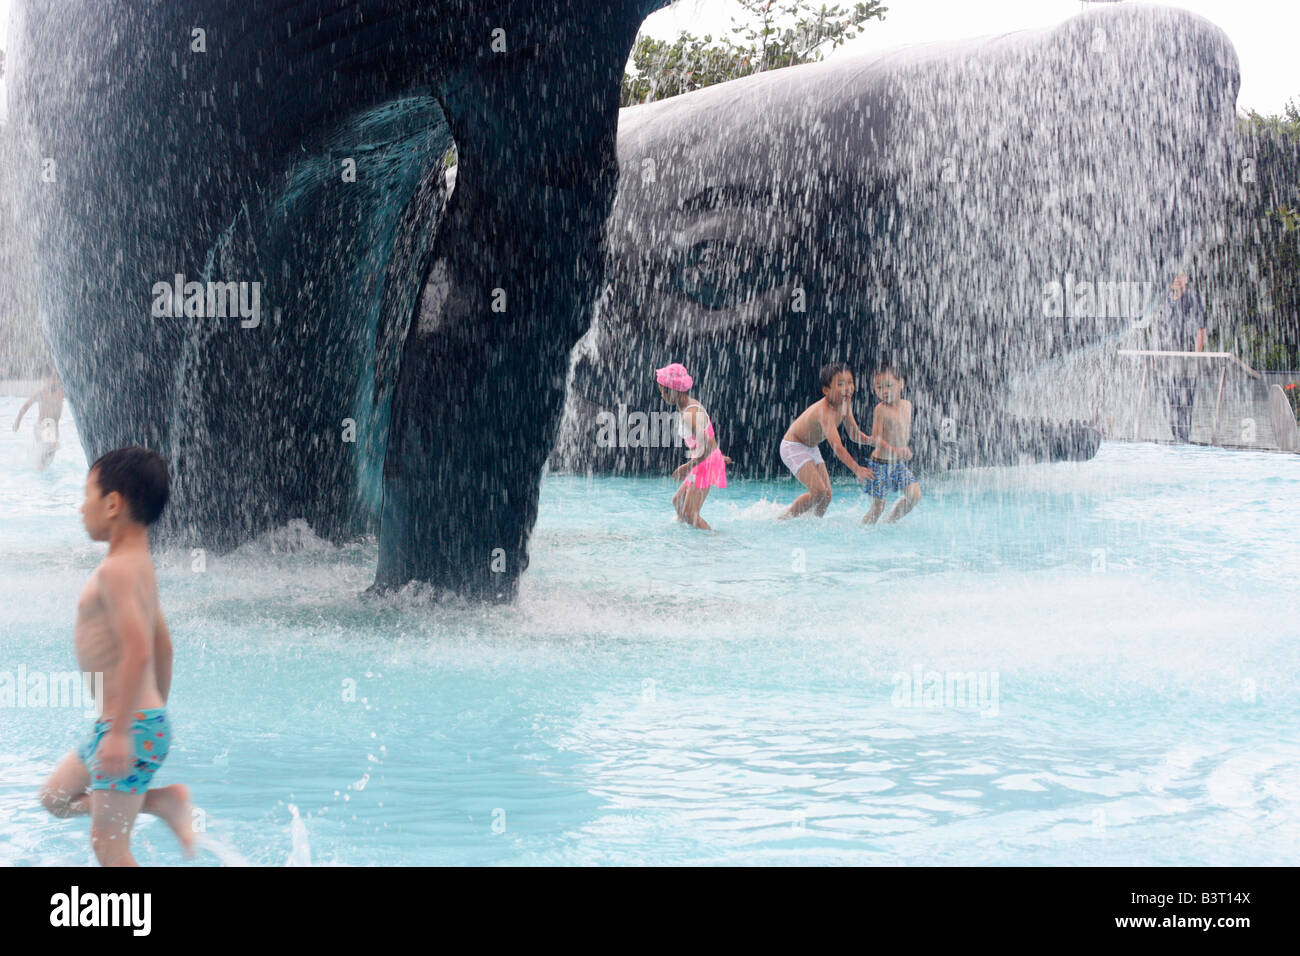 Wading pool with life-sized whale sculptures. National Museum of Marine Biology and Aquarium, Taiwan - Stock Image